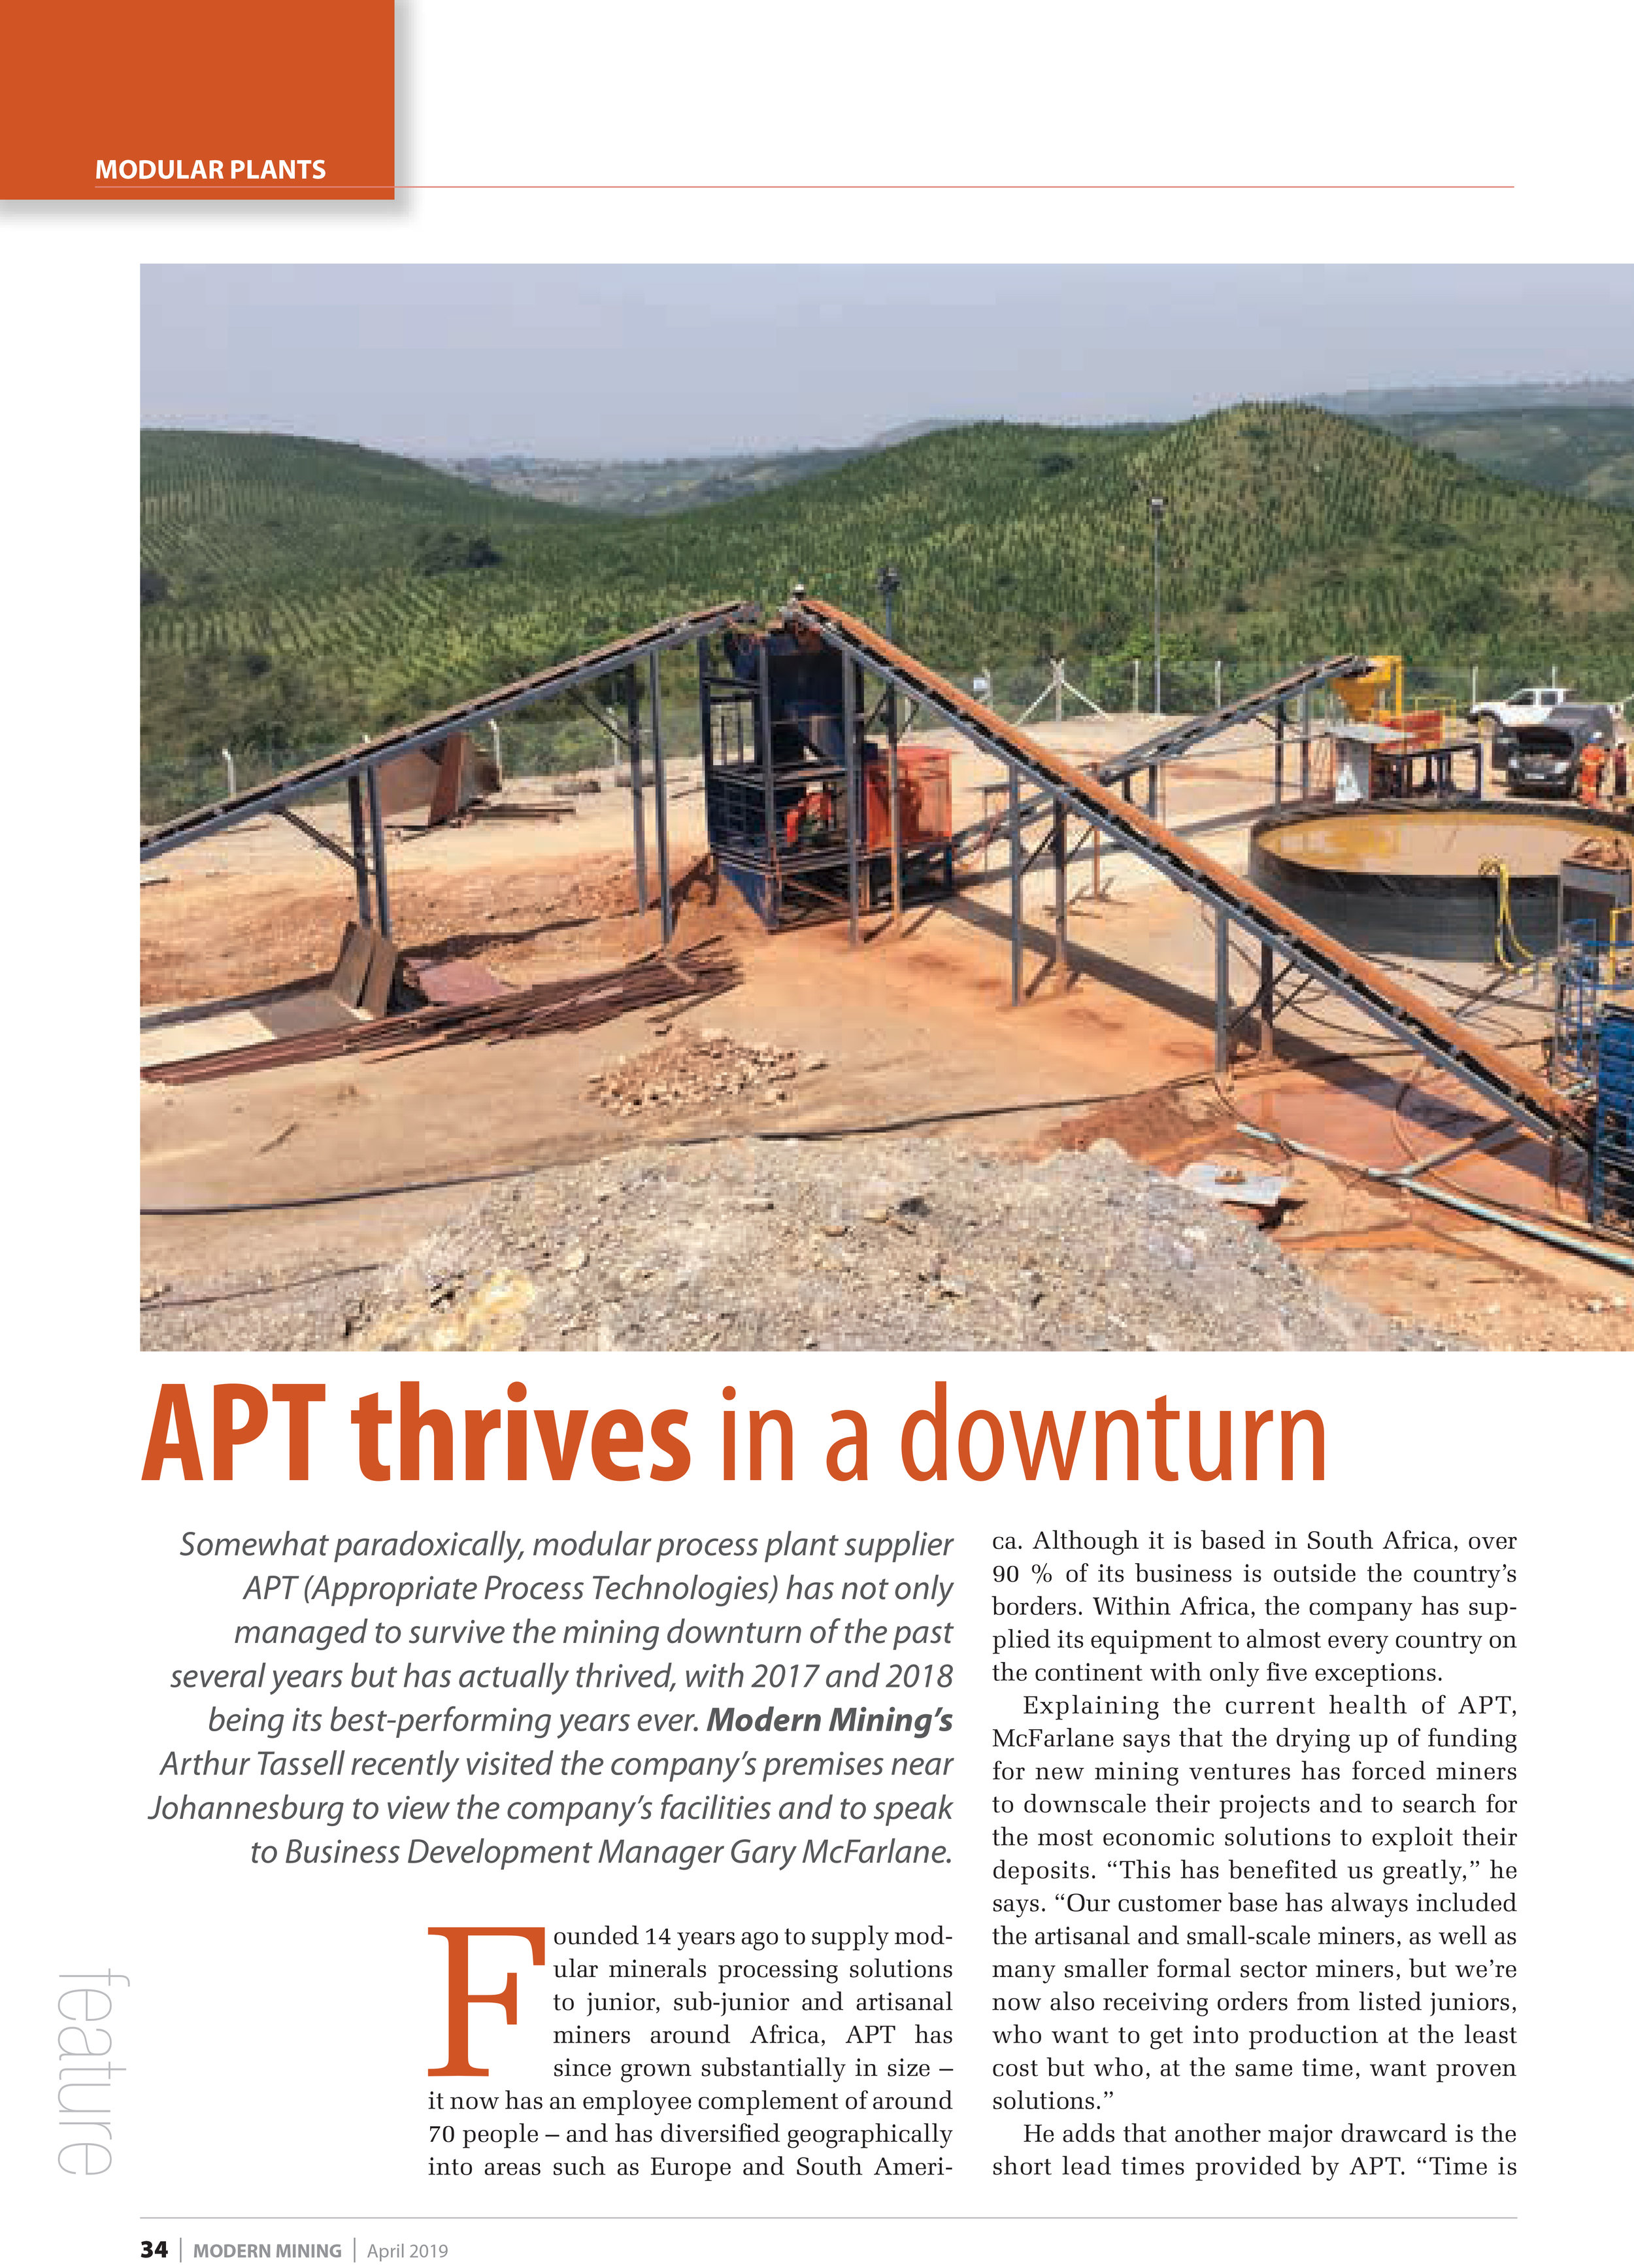 Credit to Modern Mining, April 2019 issue, Page 36